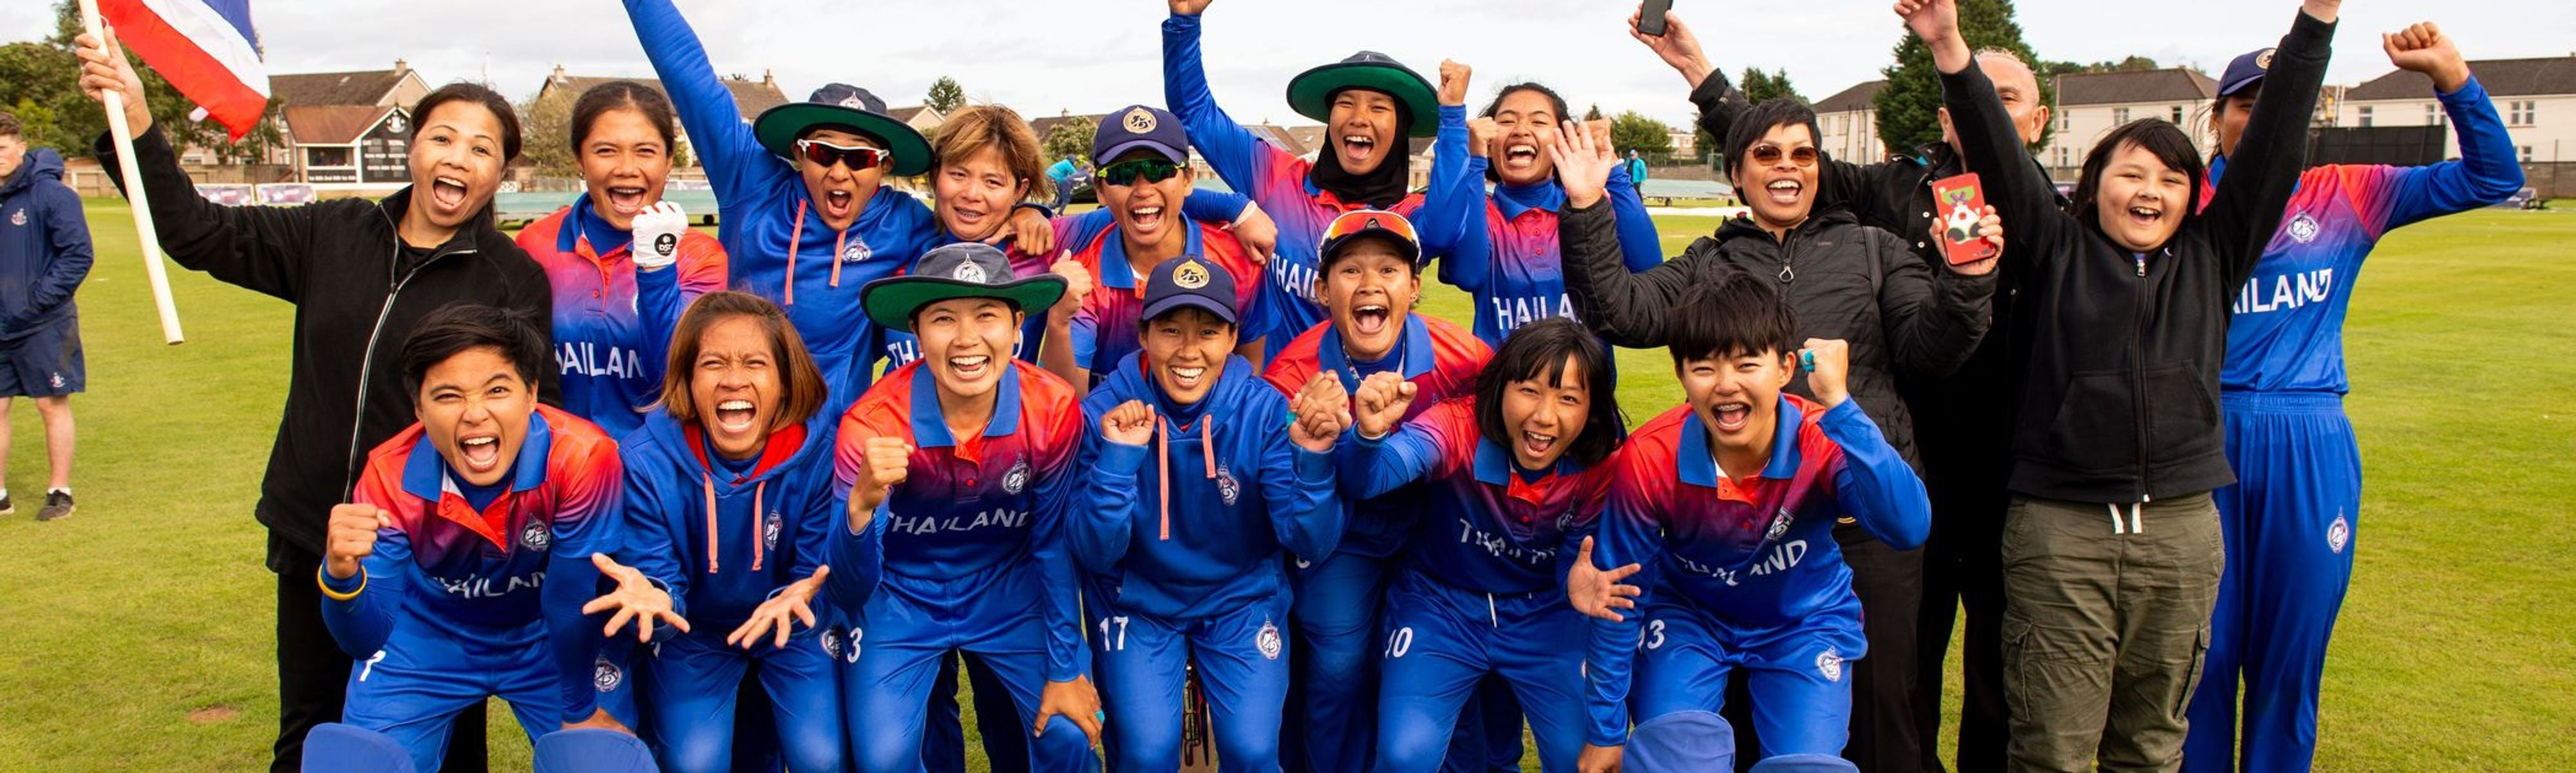 ICC T20 Women's World Cup kick off!